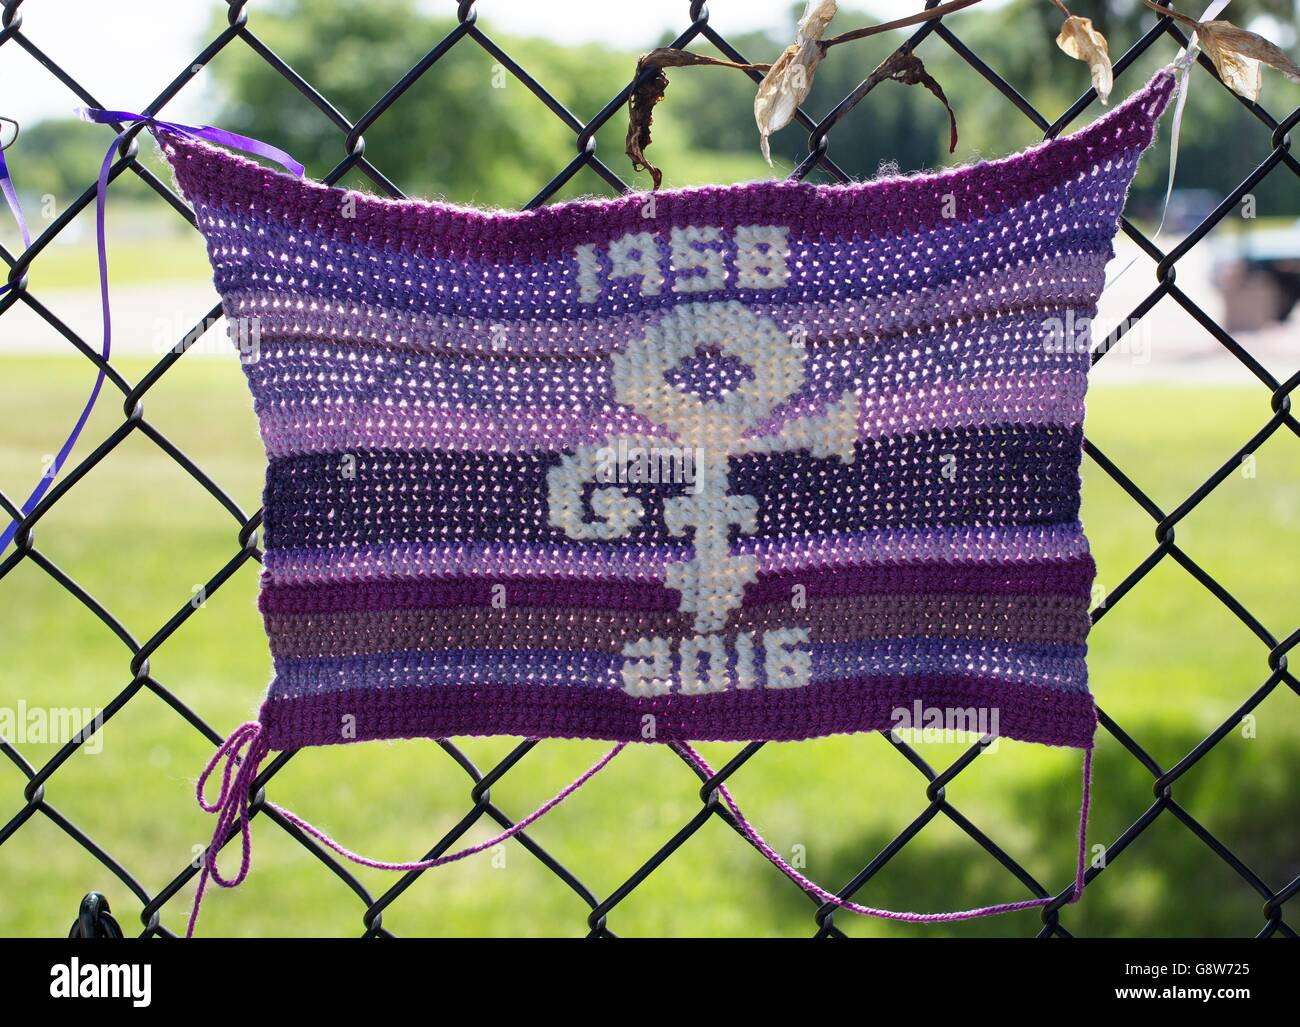 Memorial gifts and offerings to Prince from fans, on the fence around Paisley Park in Chanhassen, Minnesota, USA. - Stock Image